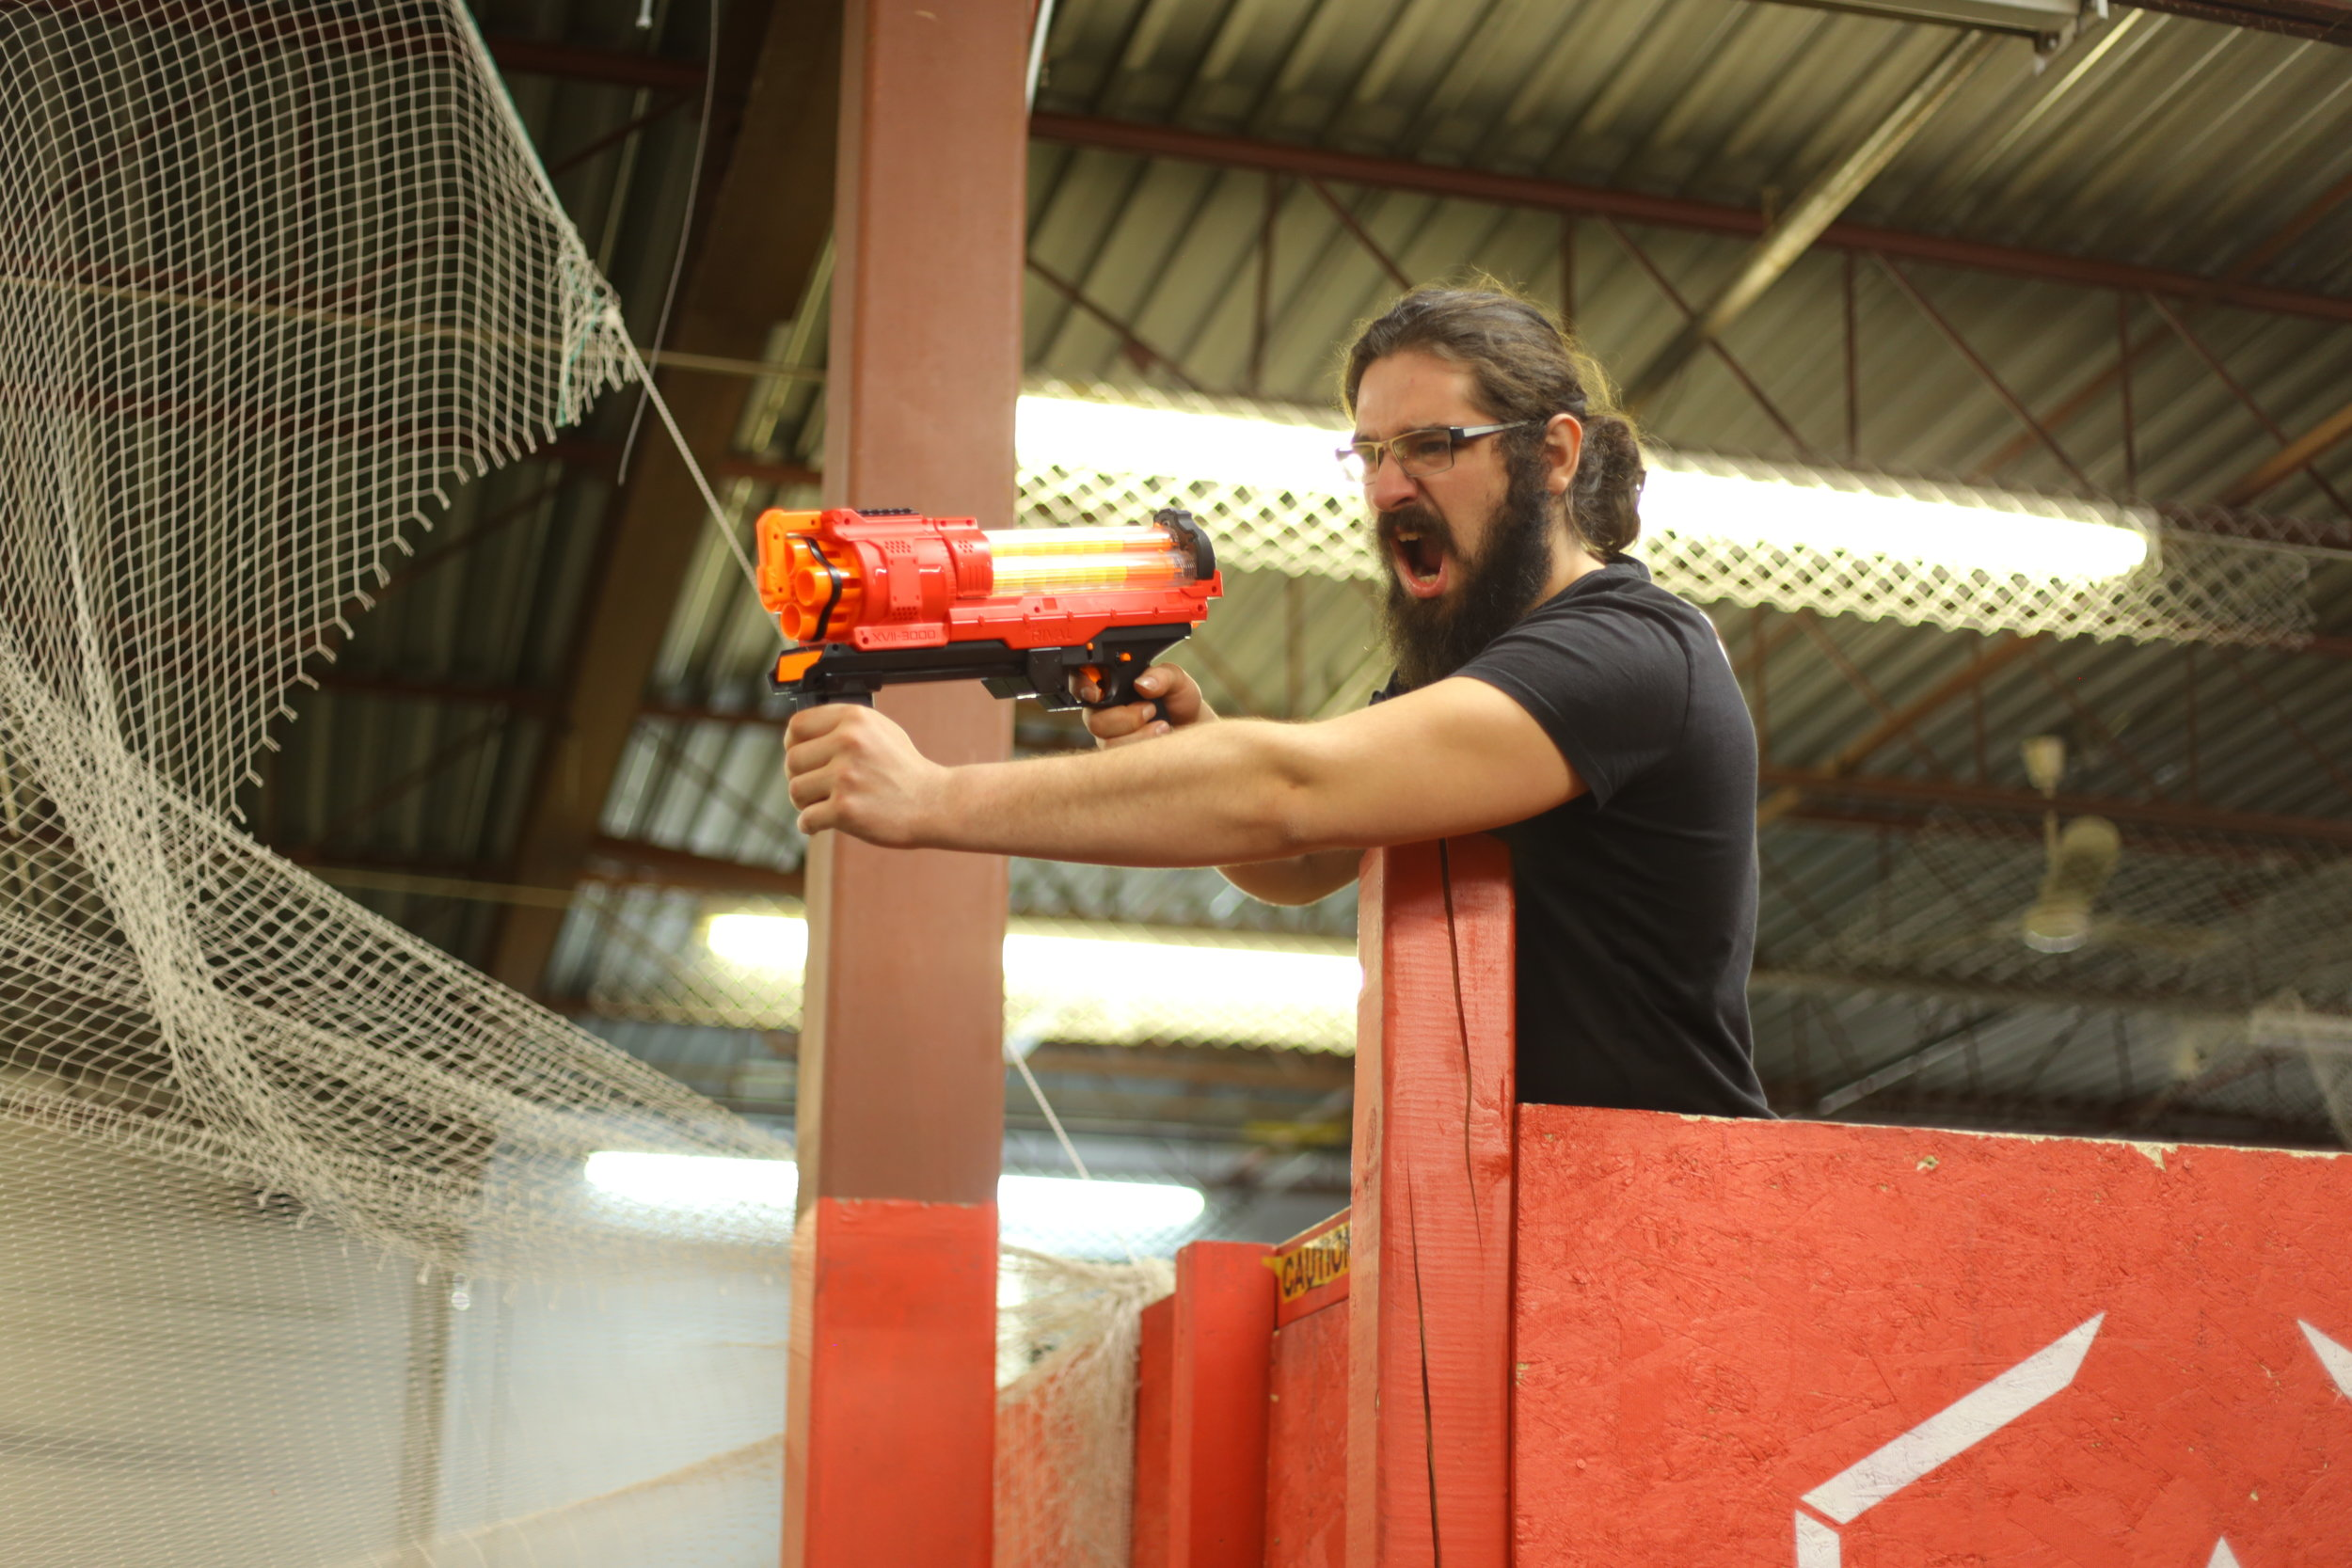 toronto nerf wars sniper tower red rival Ex-3 archers arena nerf combat battle.JPG